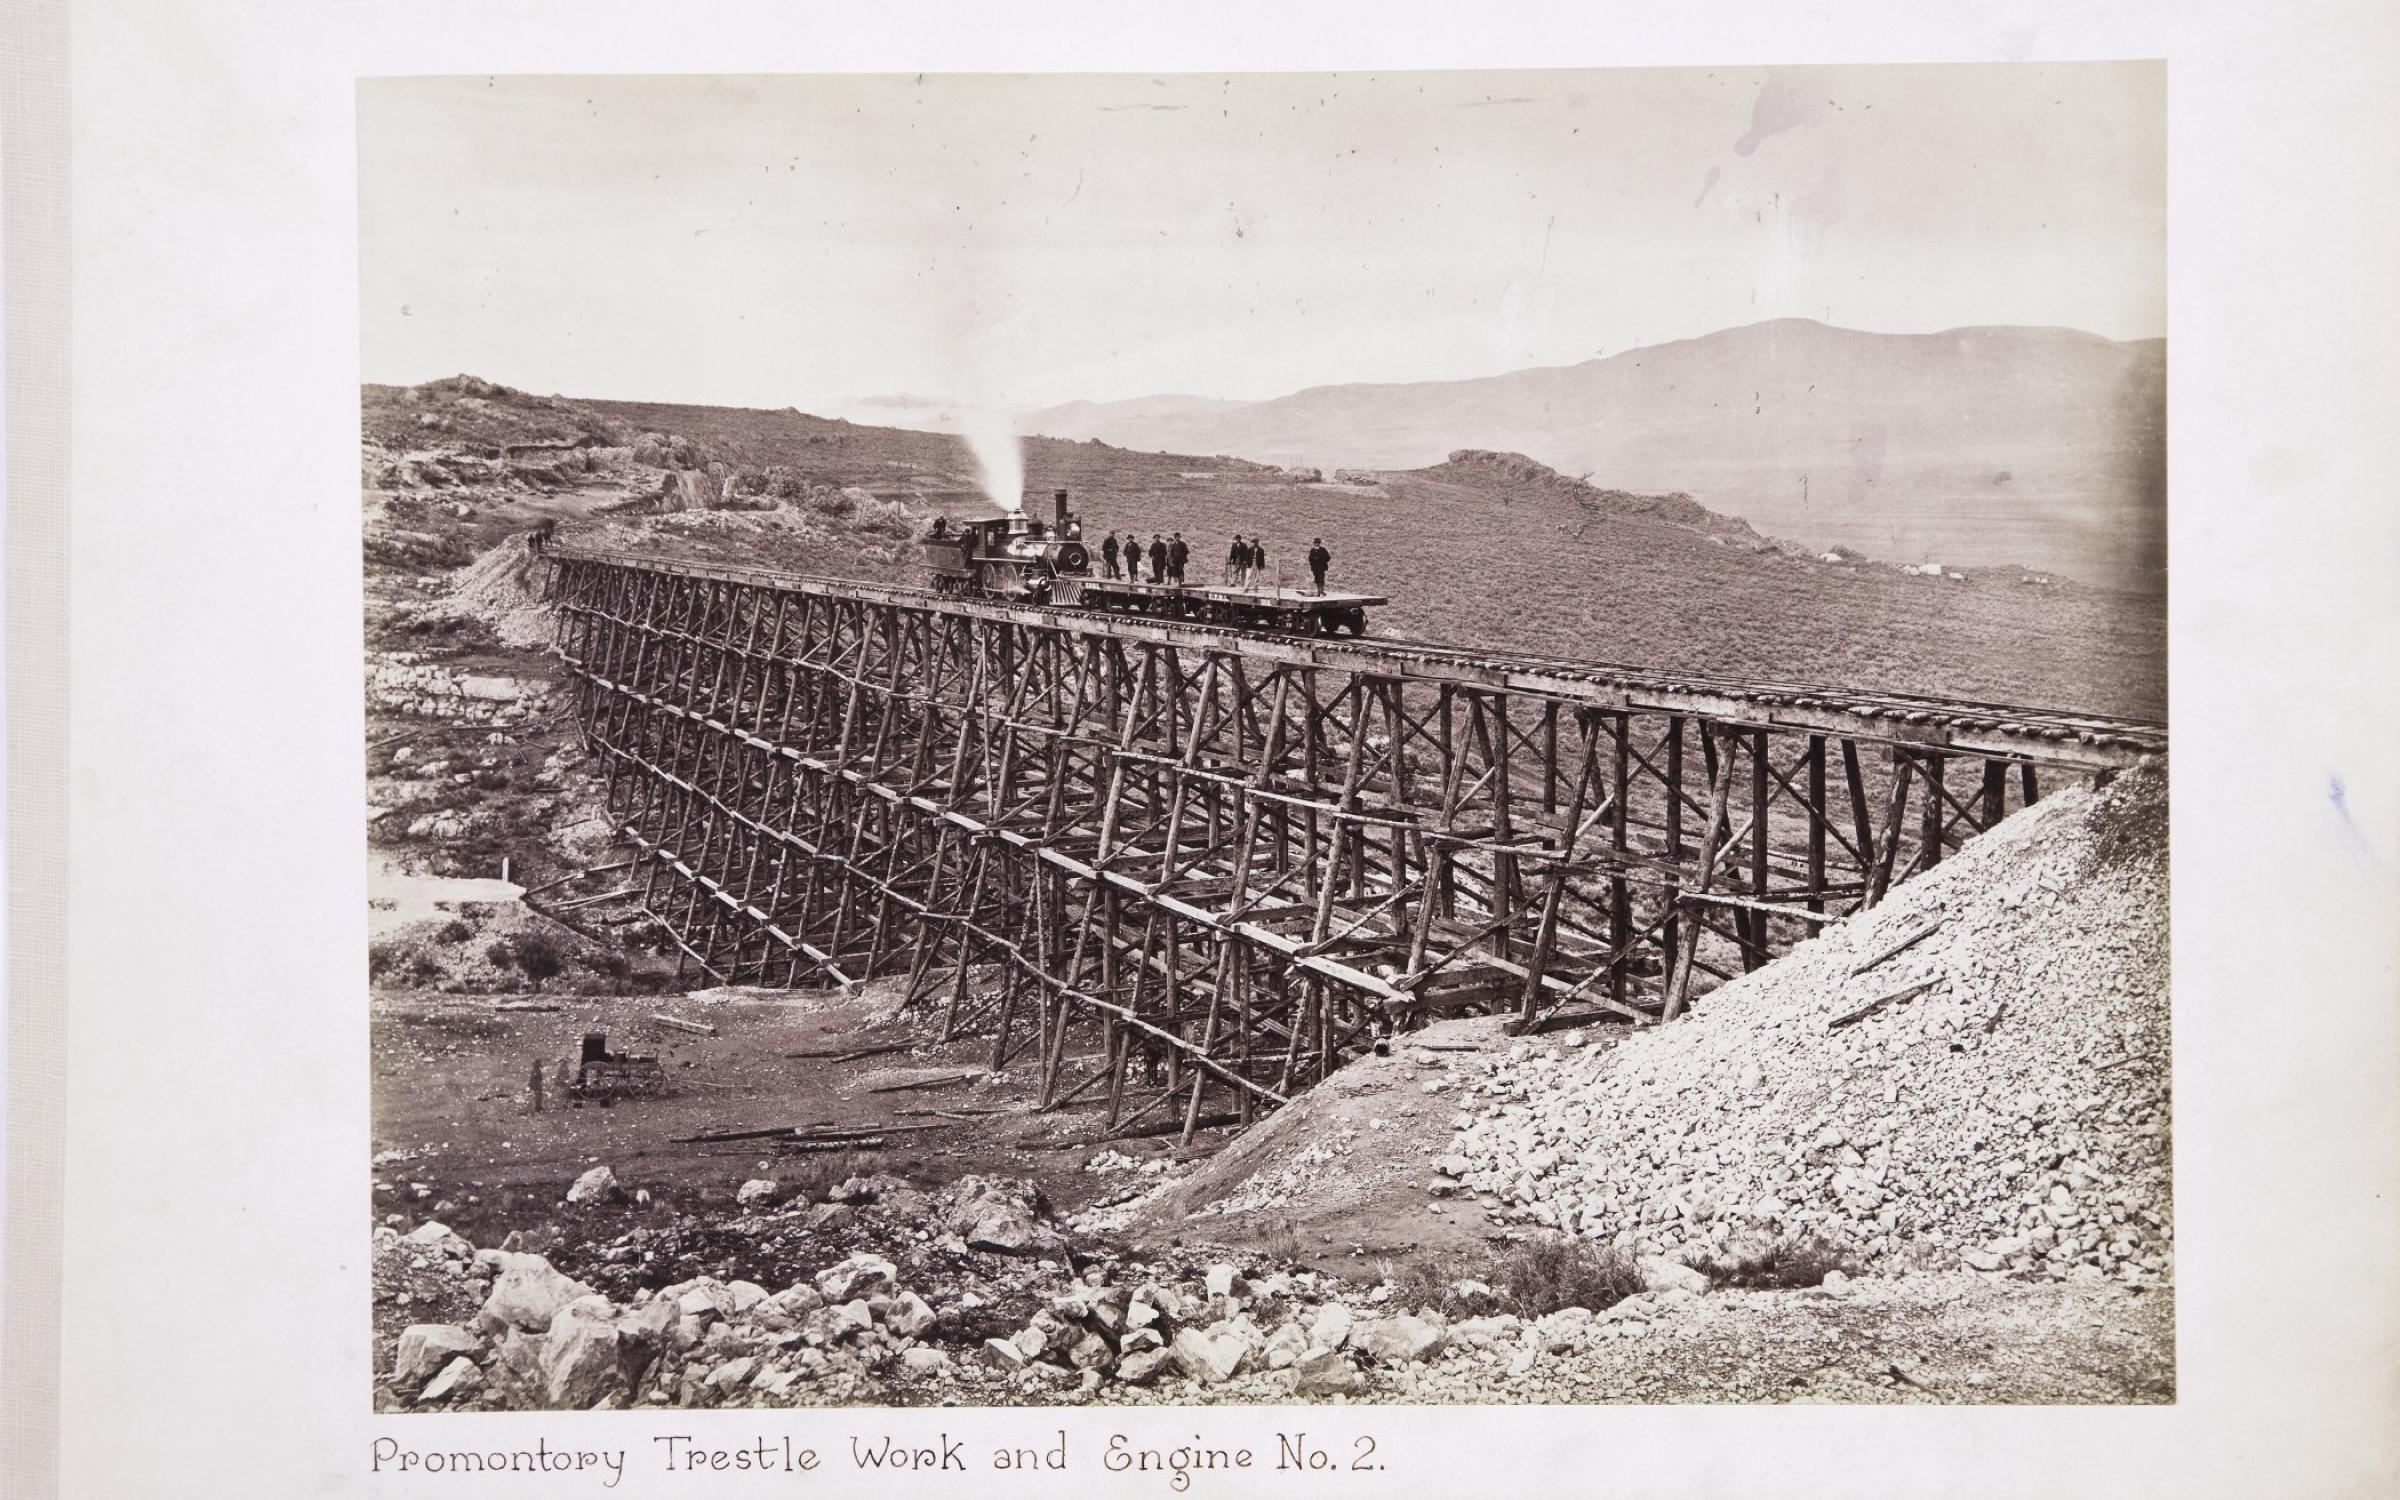 Andrew J. Russell, (American, 1829–1902), Promontory Trestle Work and Engine No. 2, 1869, albumen silver print, courtesy Union Pacific Railroad Museum